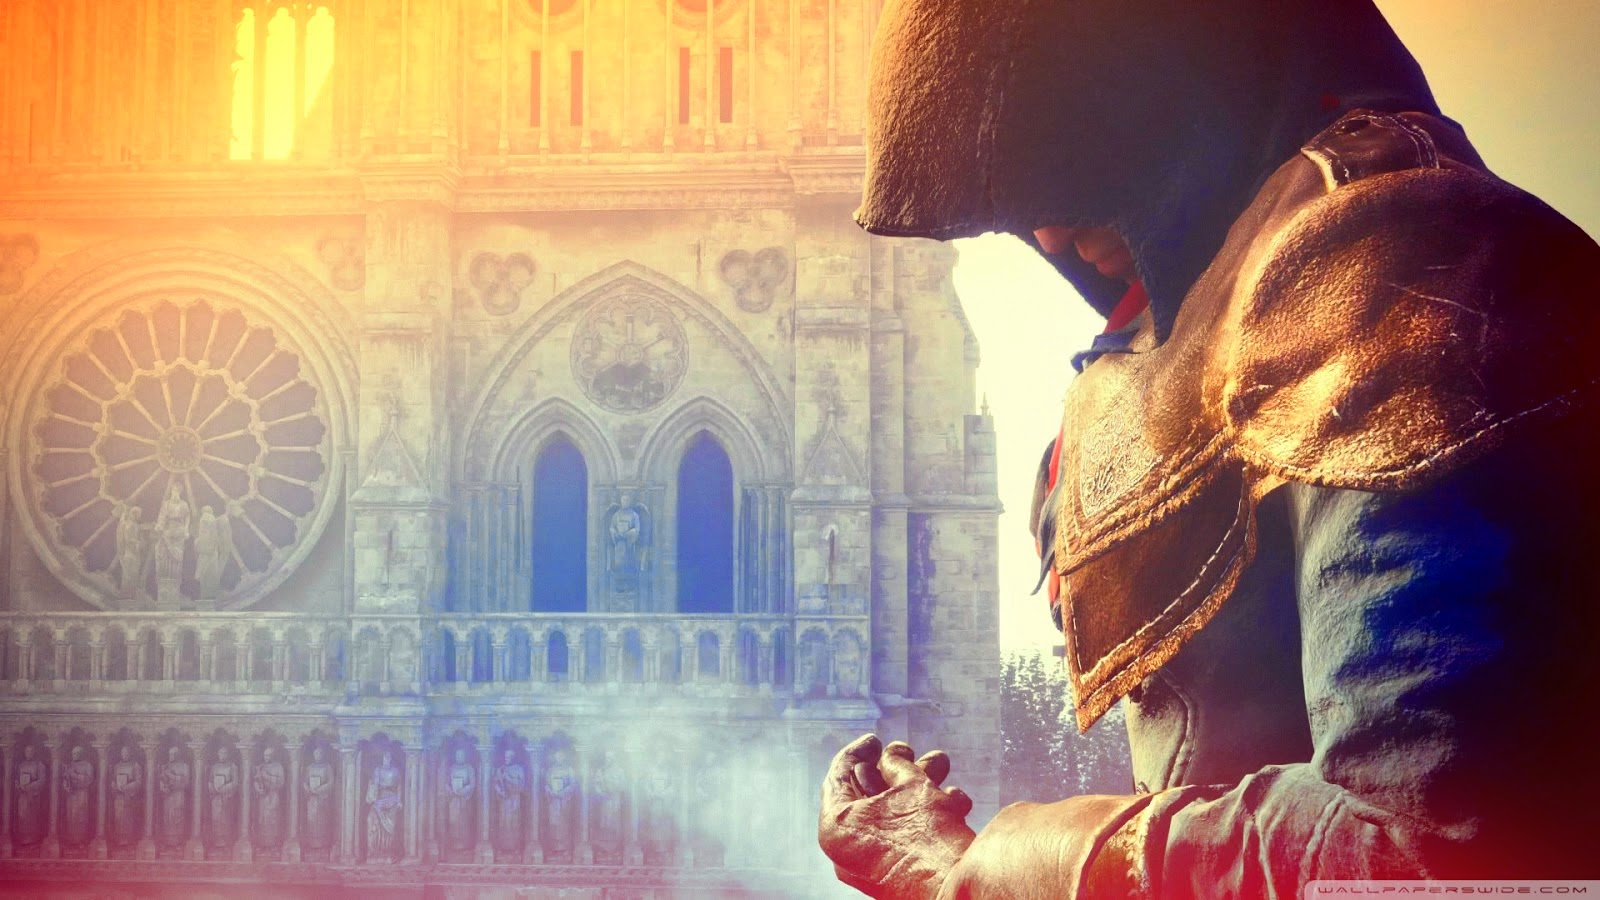 Assassins Creed 2 Wallpaper Hd 1080p Here Are Some Epic Gaming Wallpapers P Gaming Info